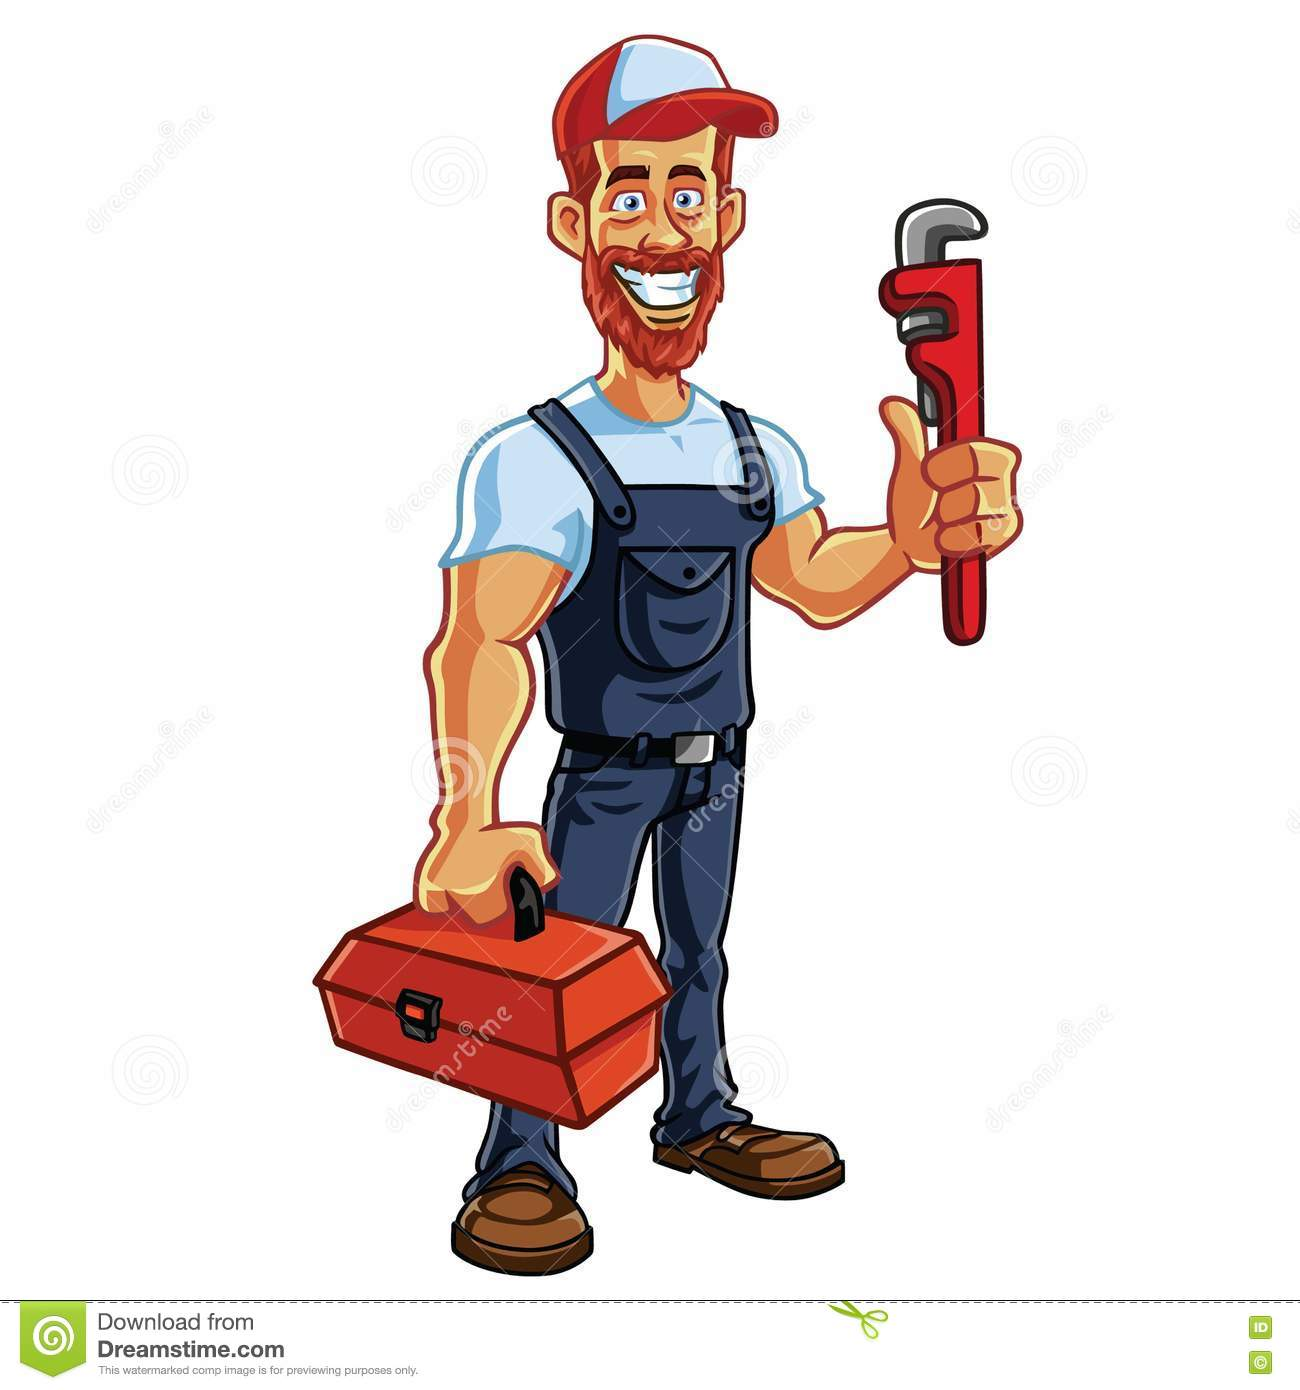 plumber-cartoon-mascot-vector-illustration-73825945.jpg